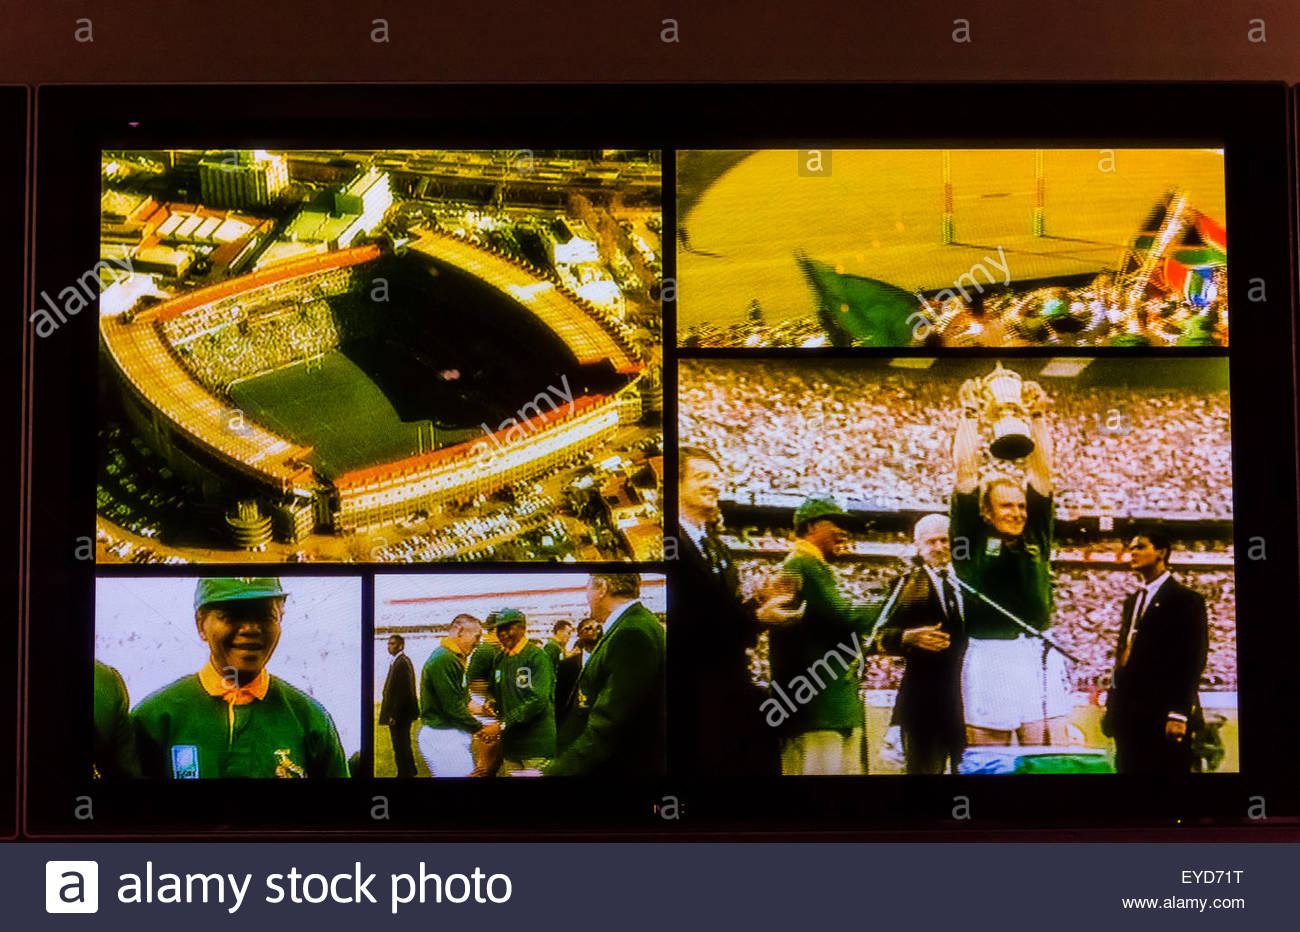 Video images of the famous 1995 Rugby World Cup game won by South Africa with President Nelson Mandela attending. - Stock Image